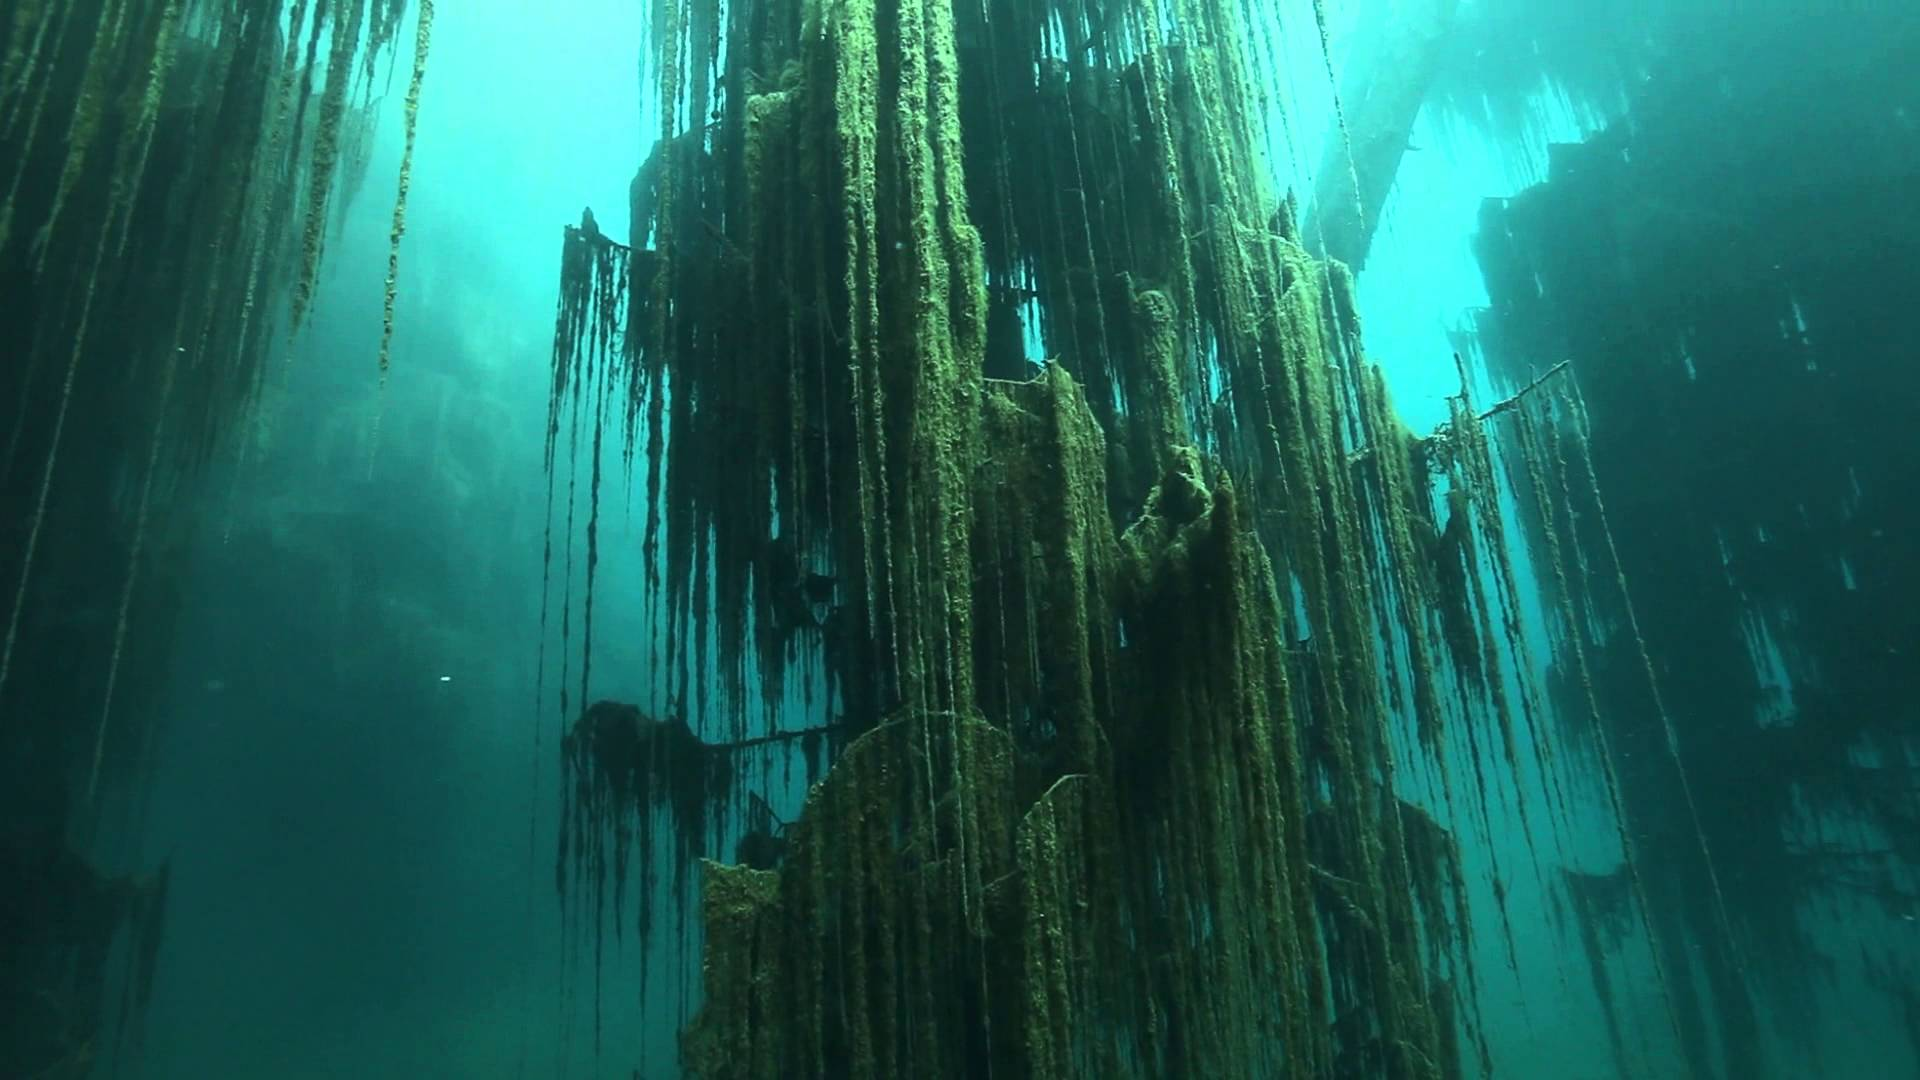 algae growing on a tree trunk underwater